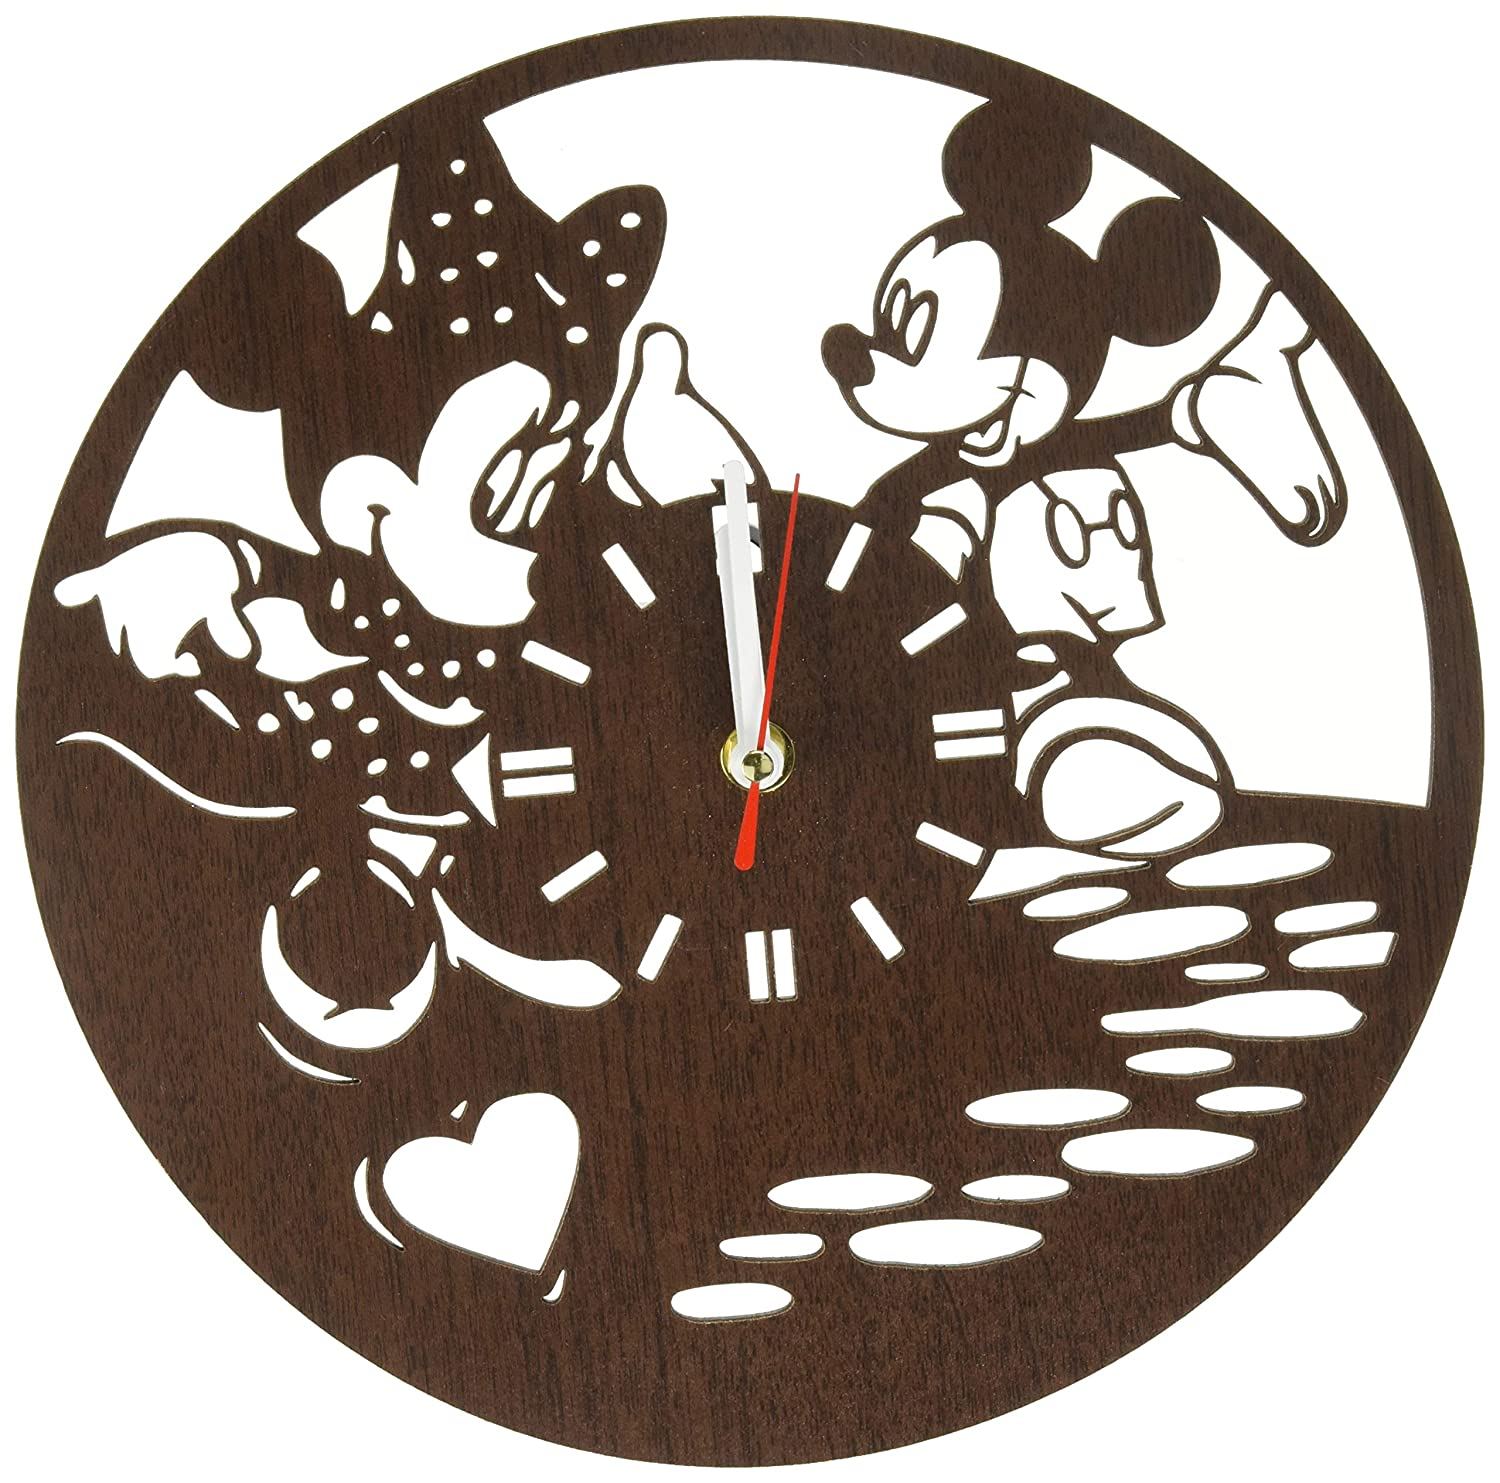 Birthday Party Decorations Baby Room Nursery Home Decor Valentines Day Handmade Wooden Wall Clock Mickey and Minnie Mouse Gifts for Kids Boys Girls Disney Fans